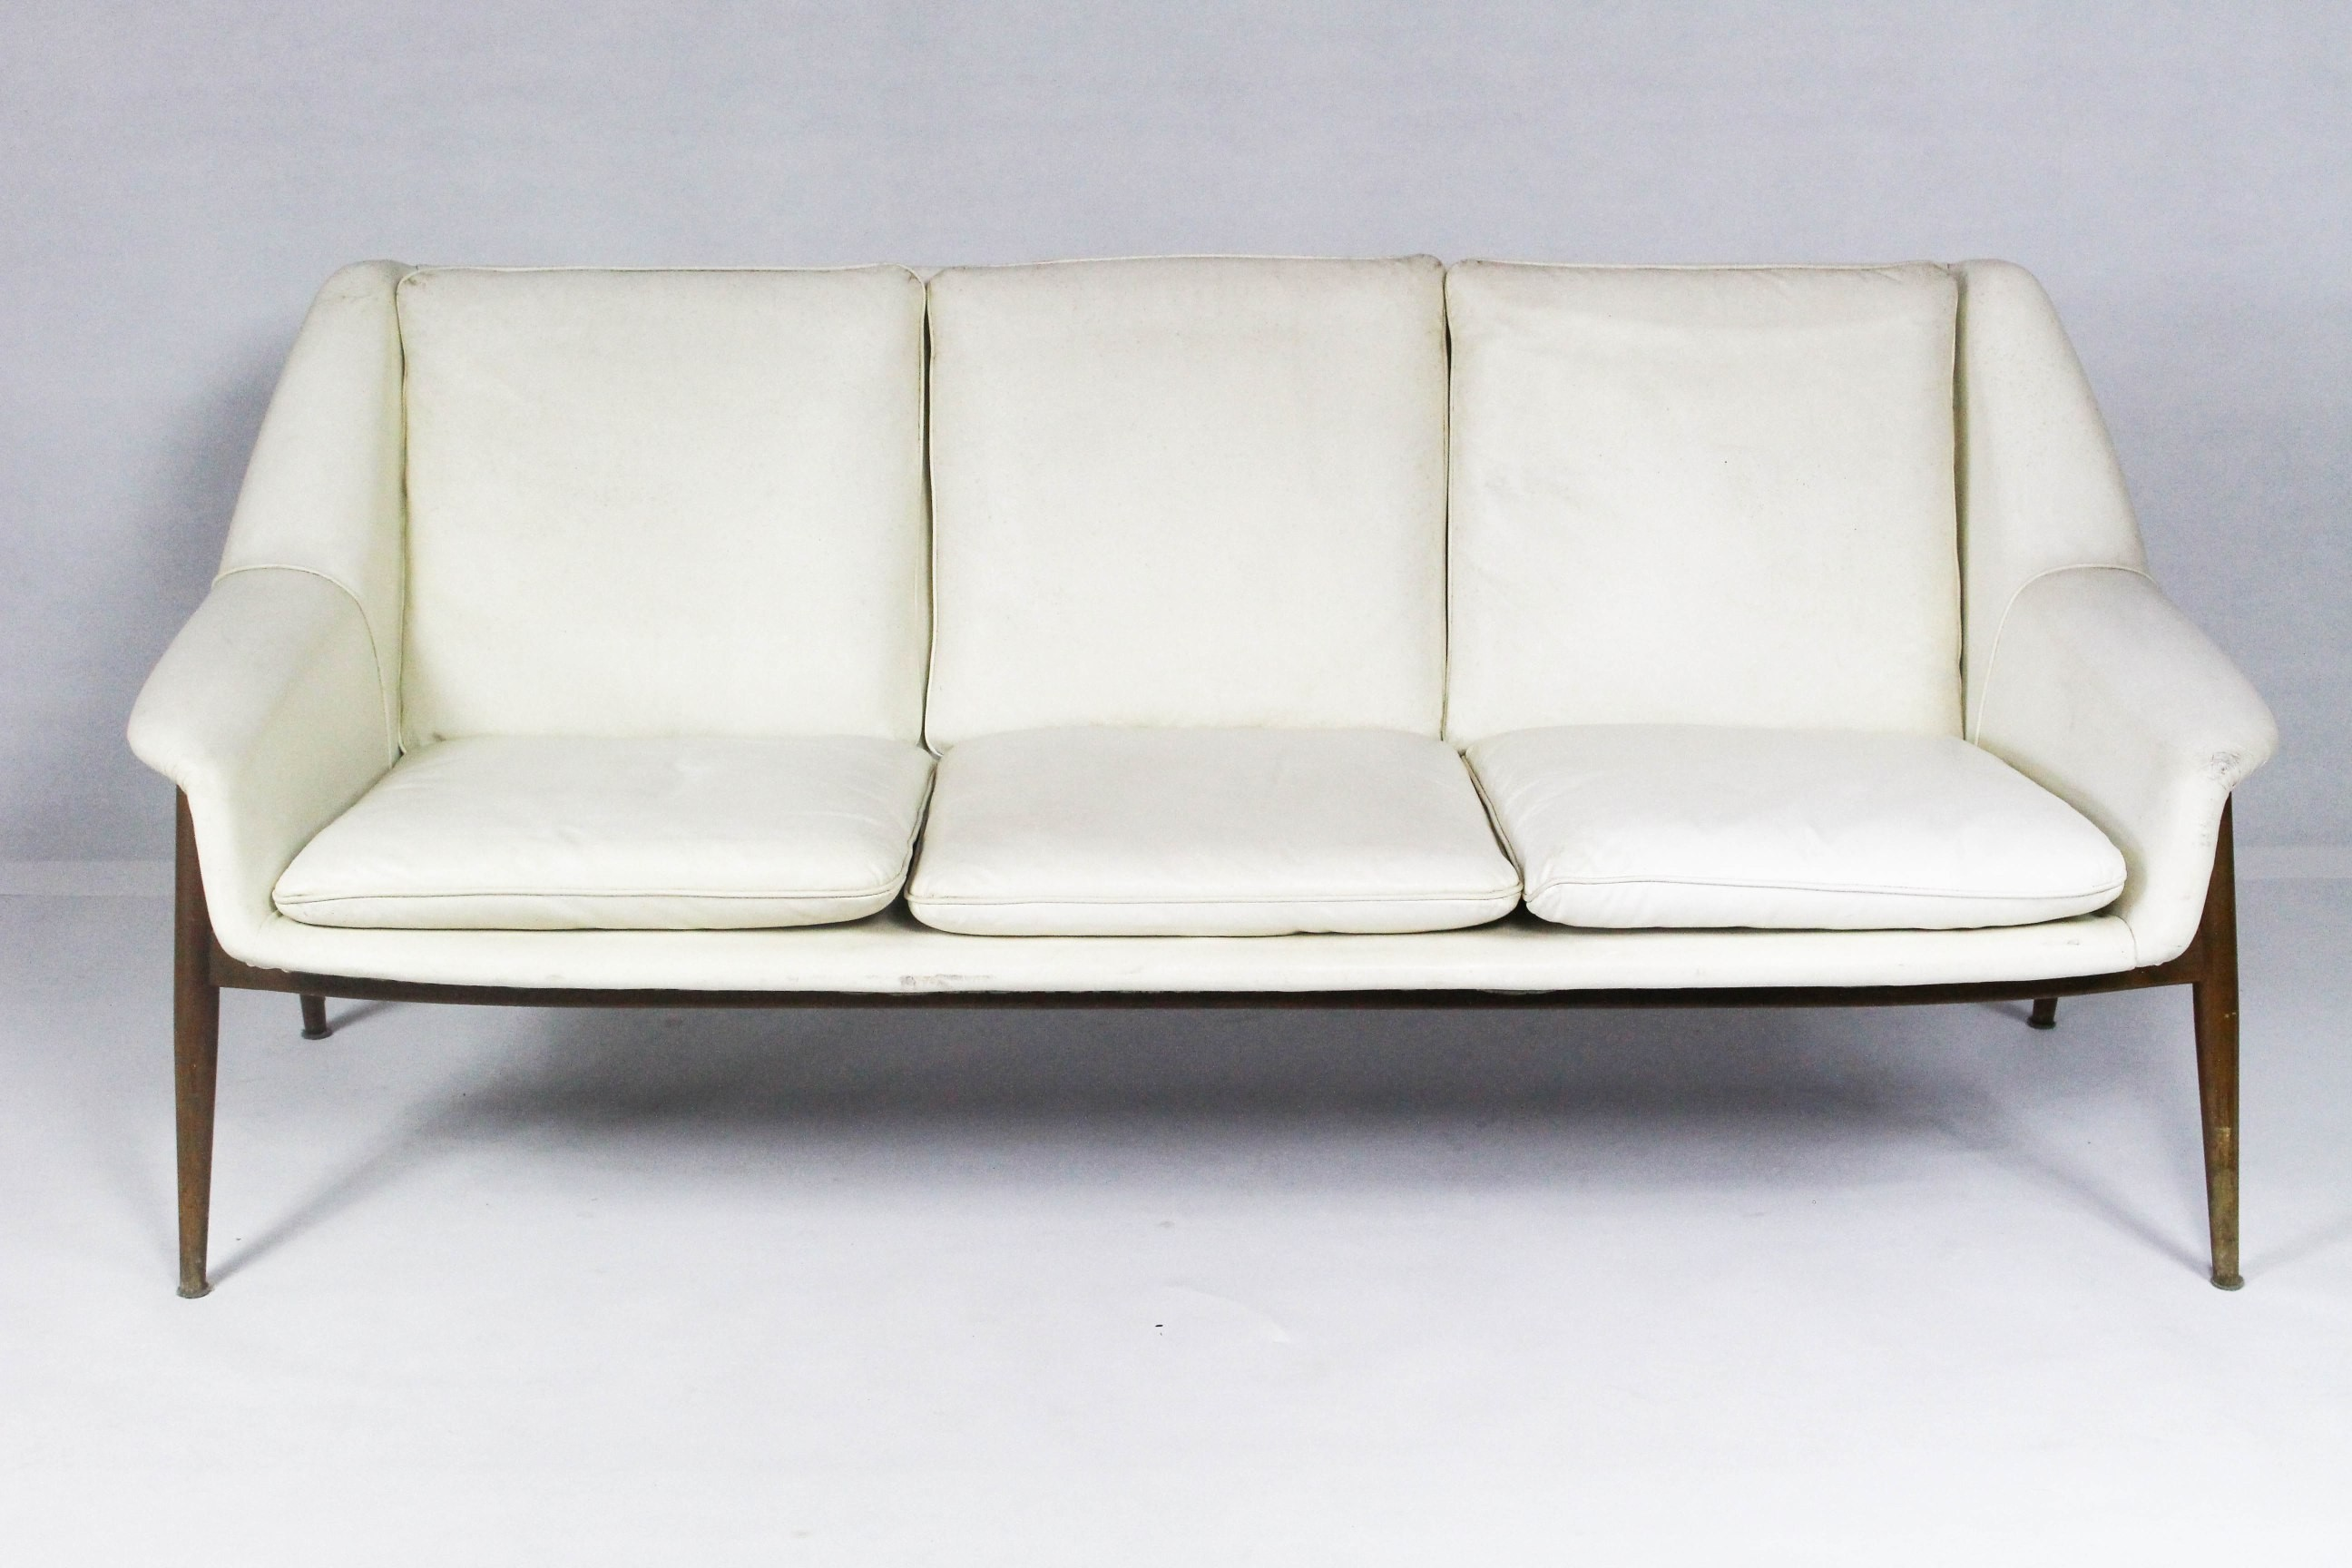 3 seater white leather sofa in teak and leather 1950s Design